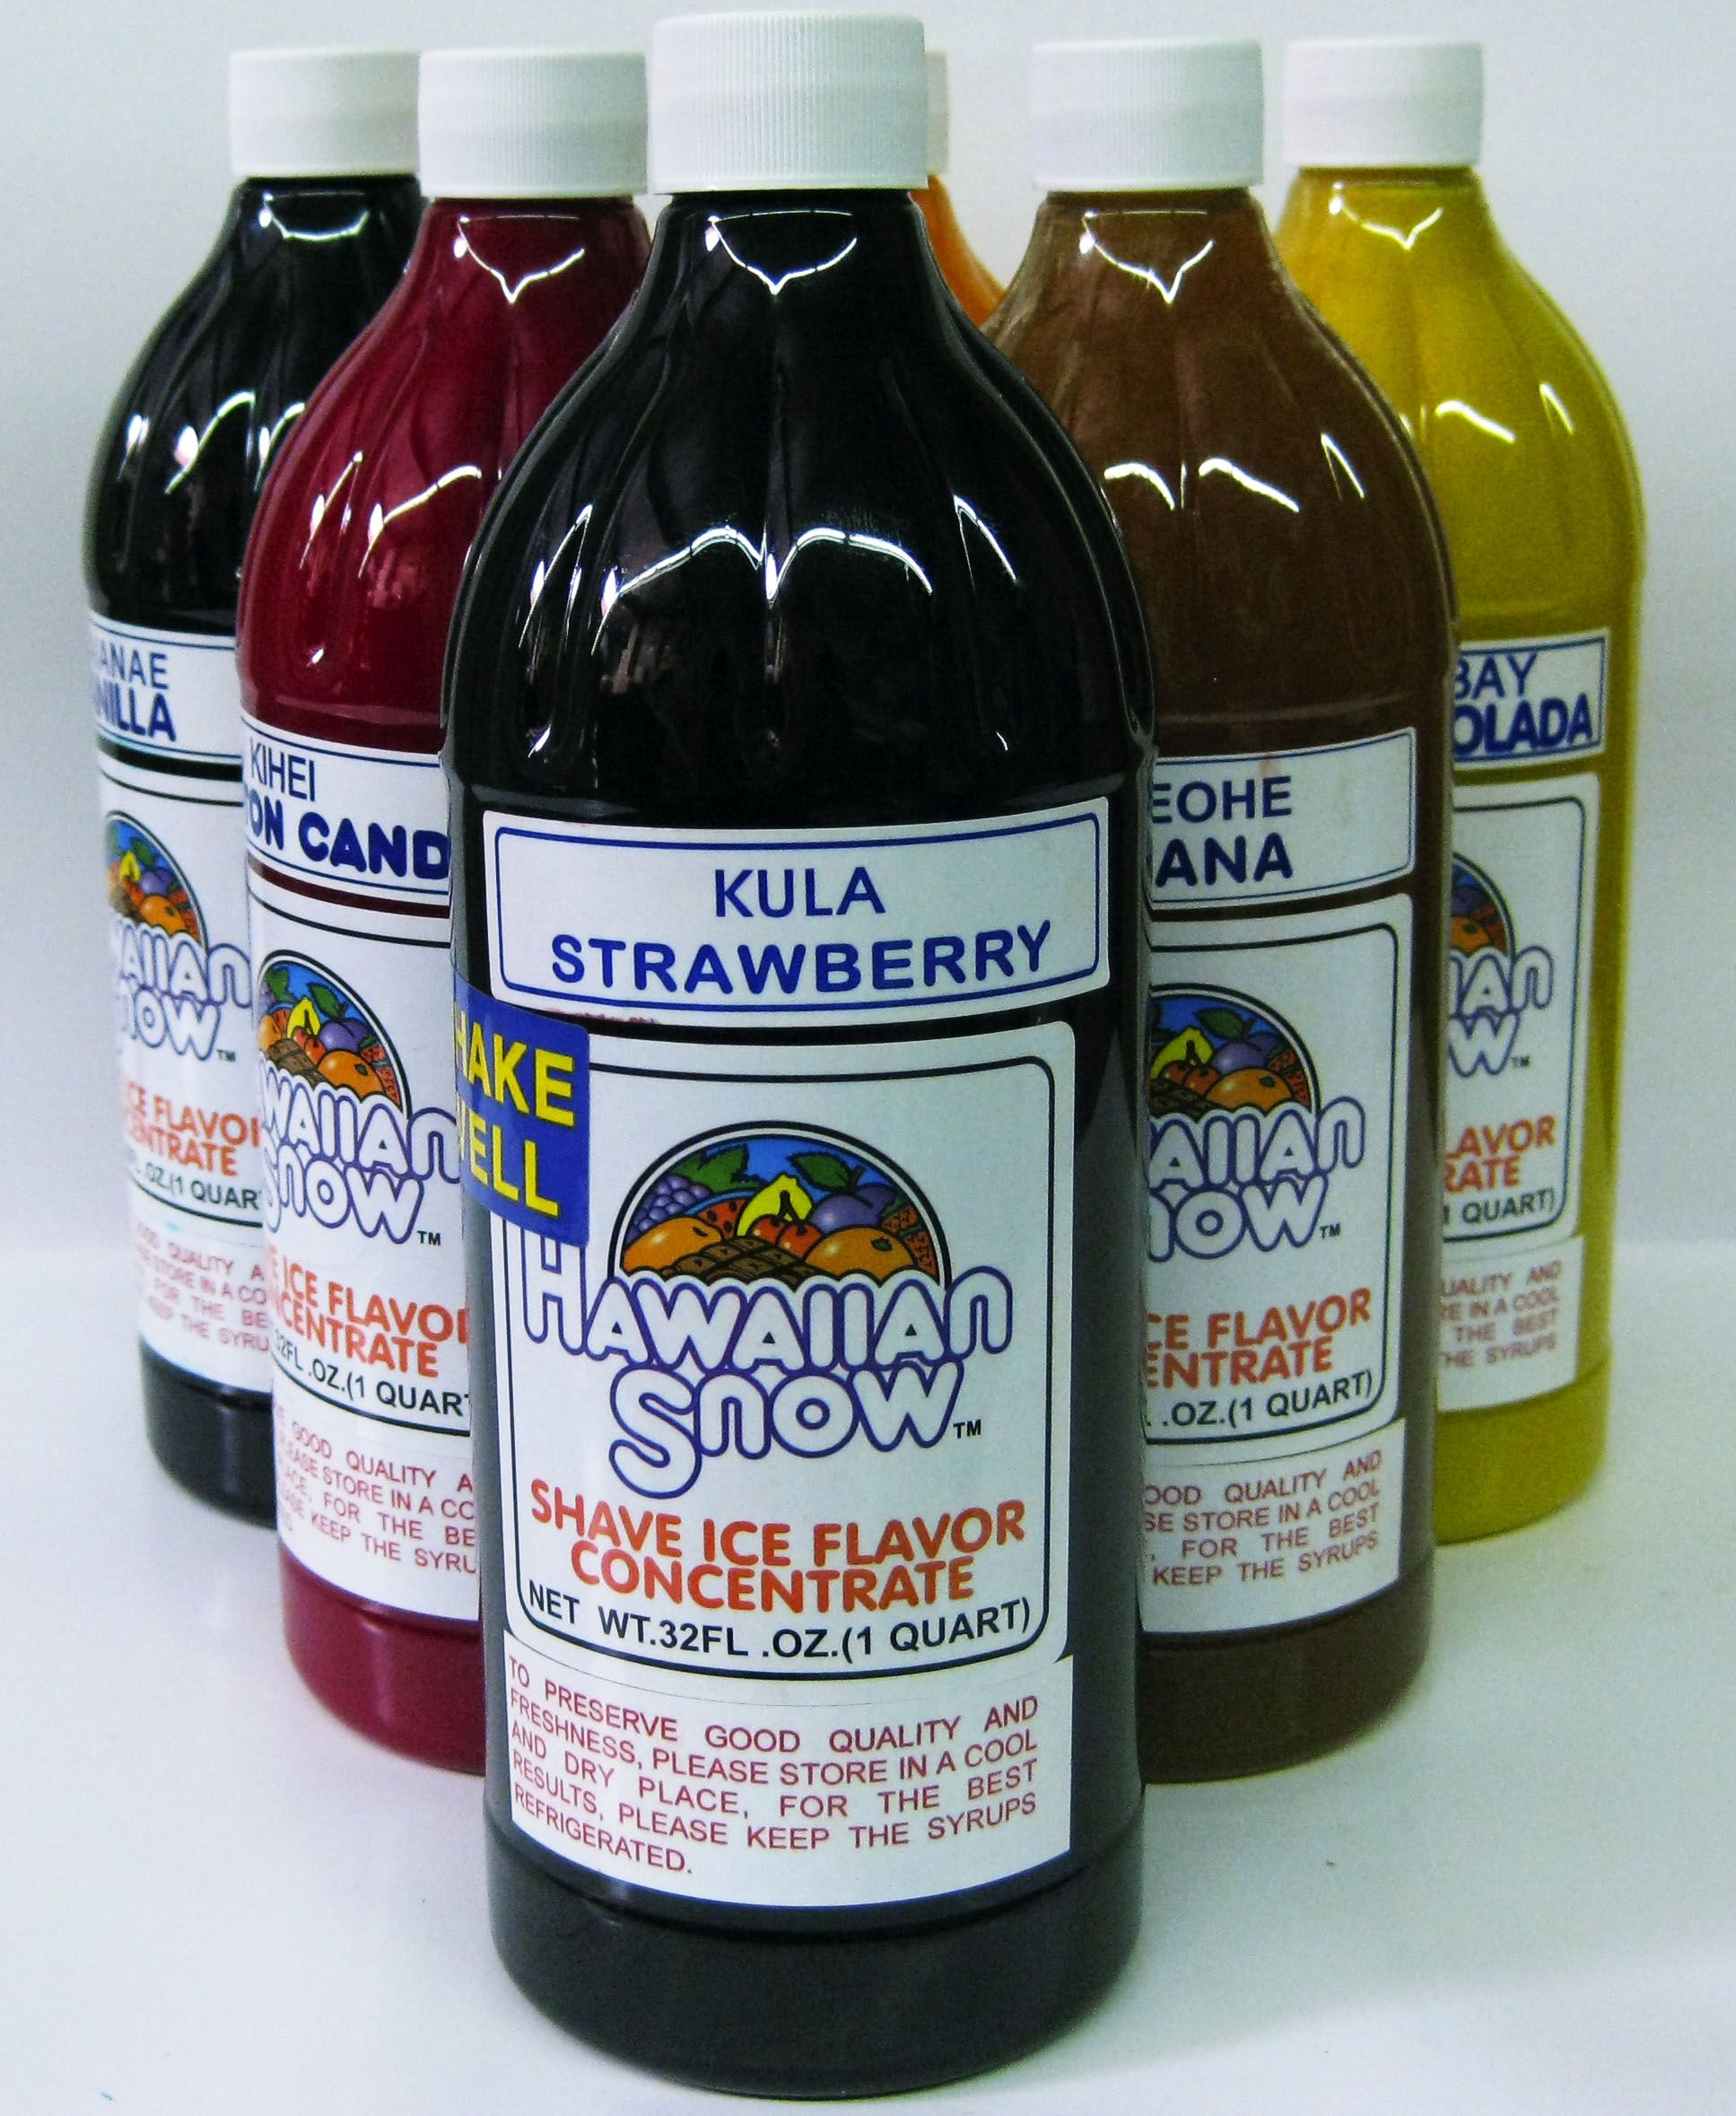 Shaved ice products